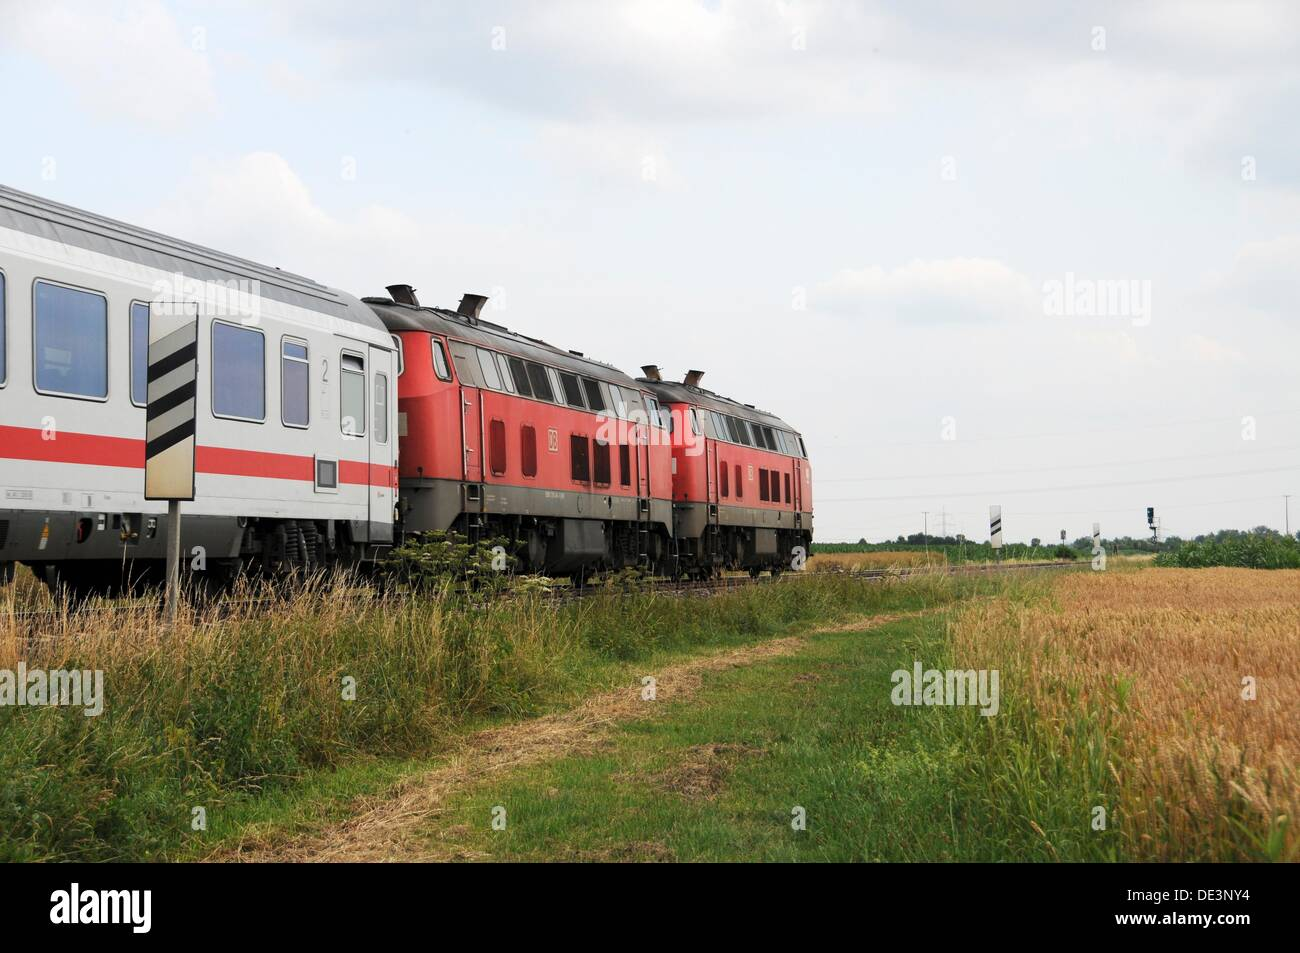 Intercity train of Deutsche Bahn AG with two diesel locomotives - Stock Image